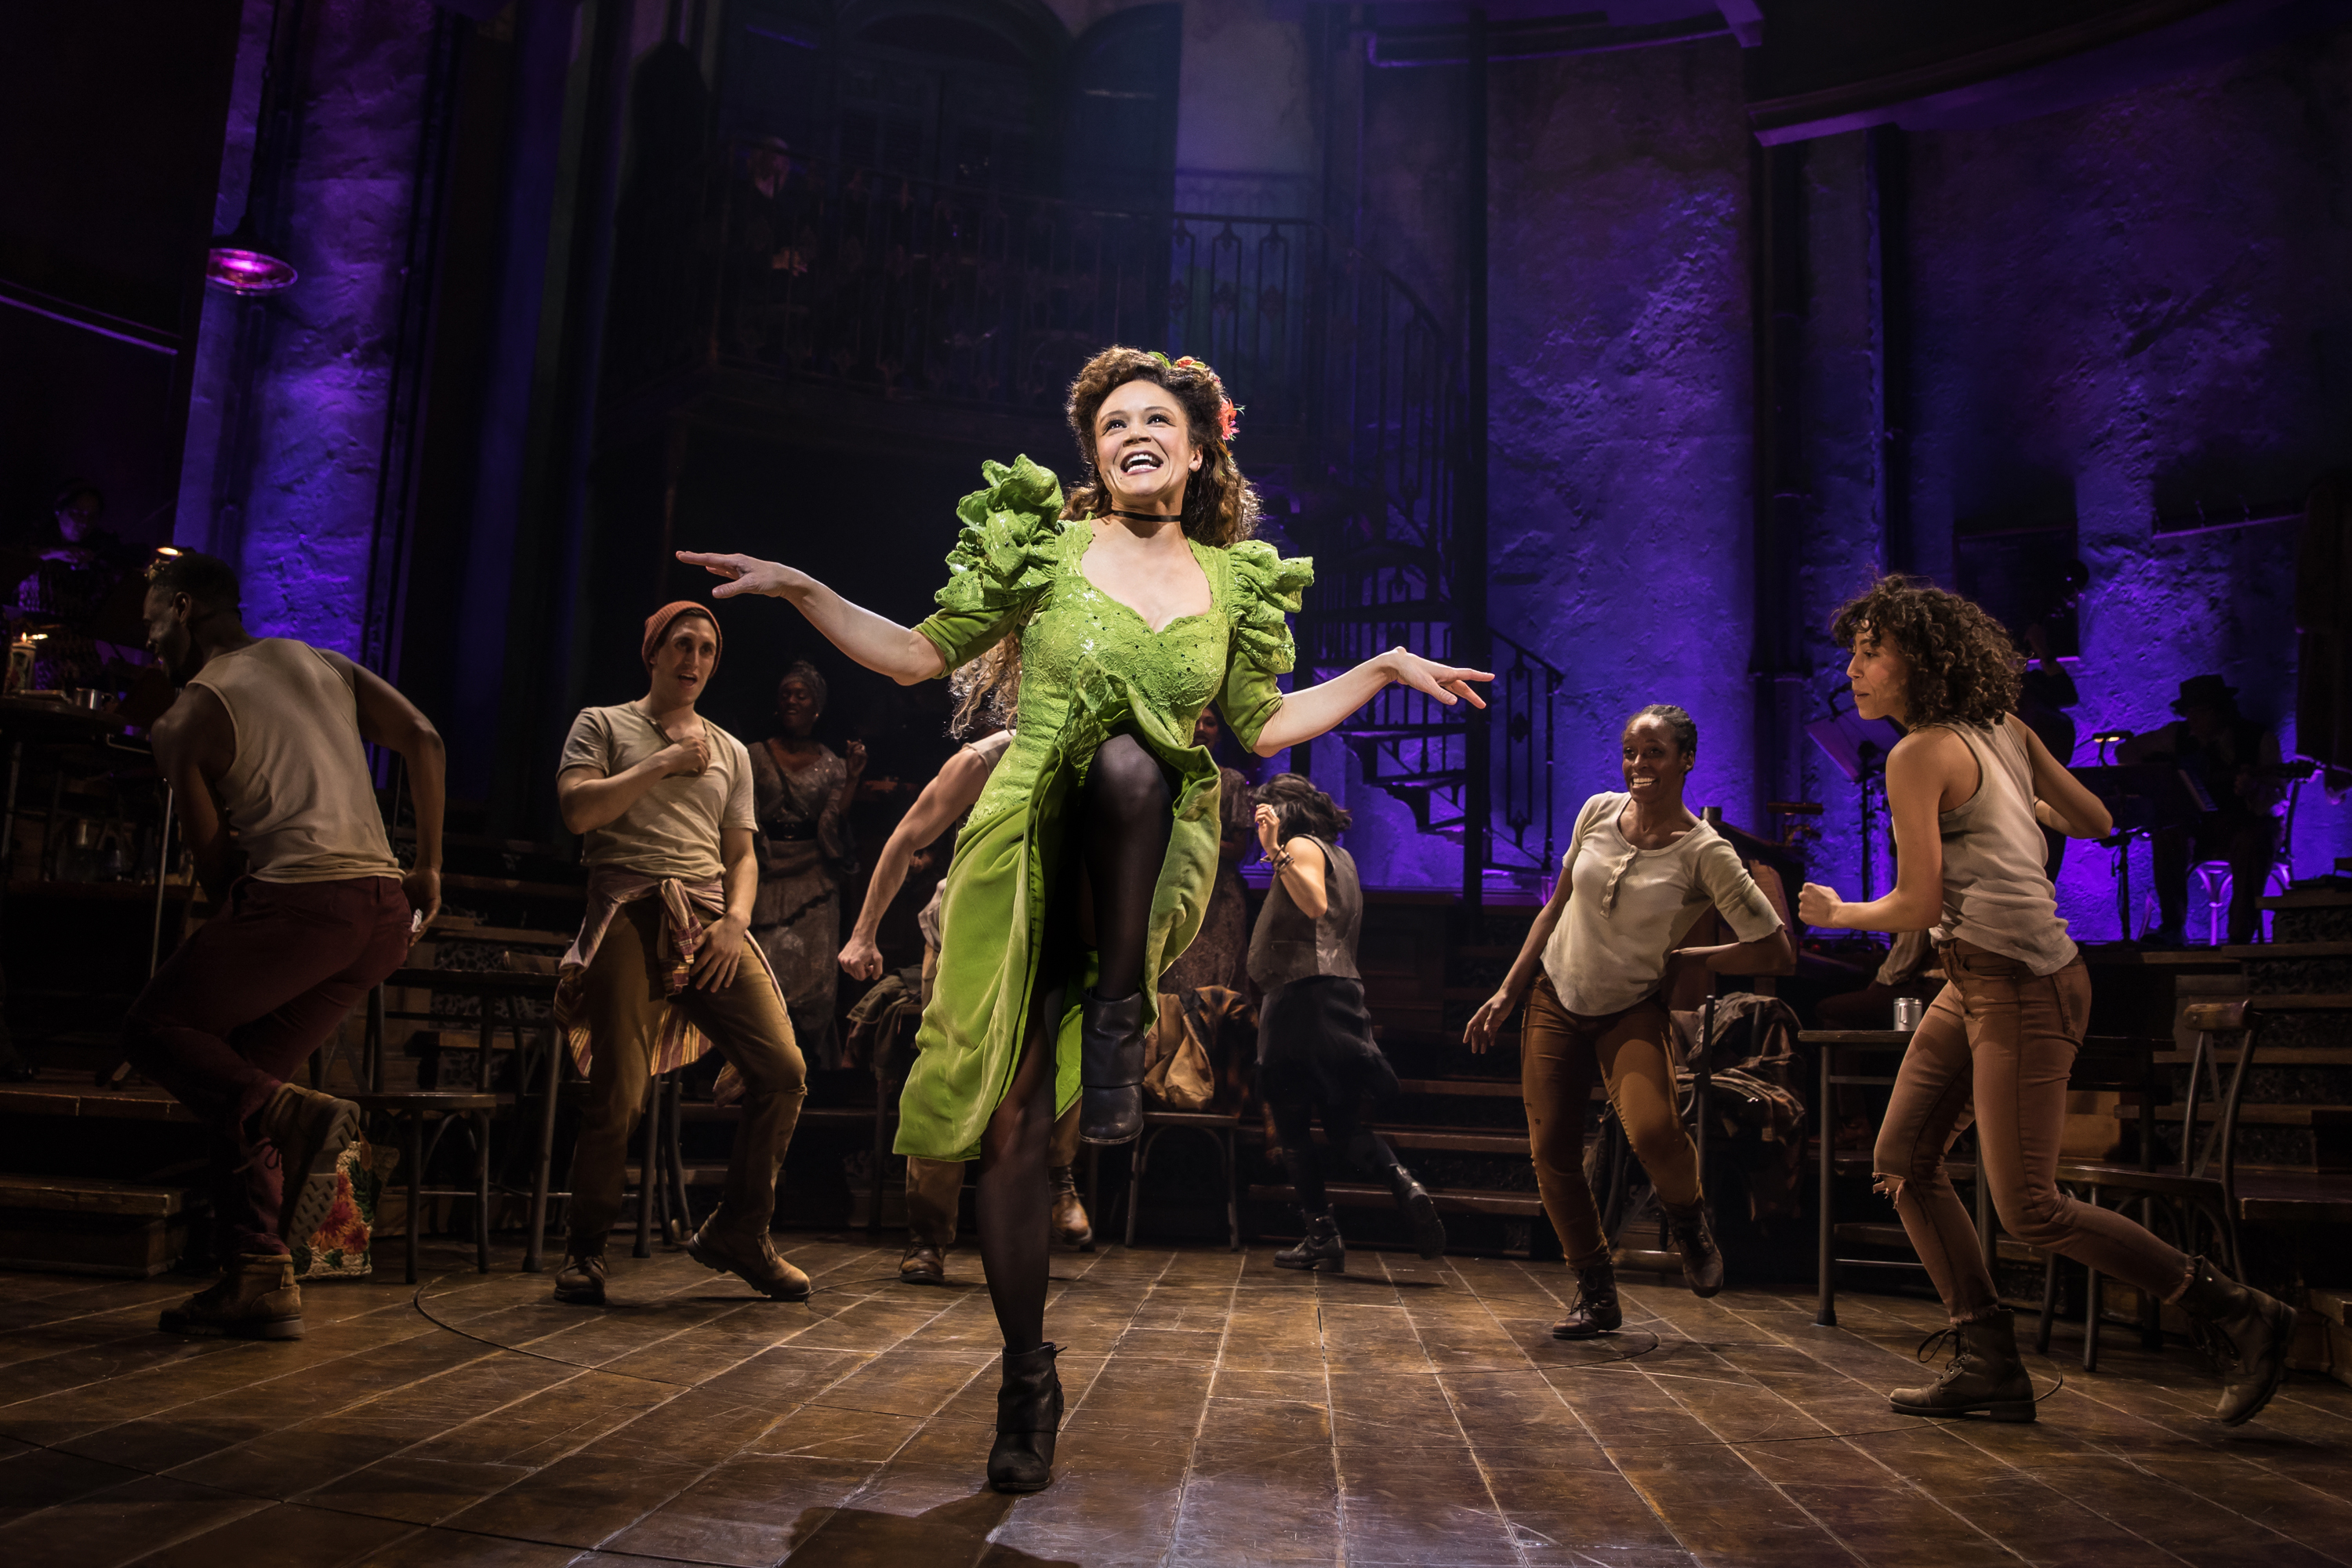 Hadestown review: The new musical has all the makings of a